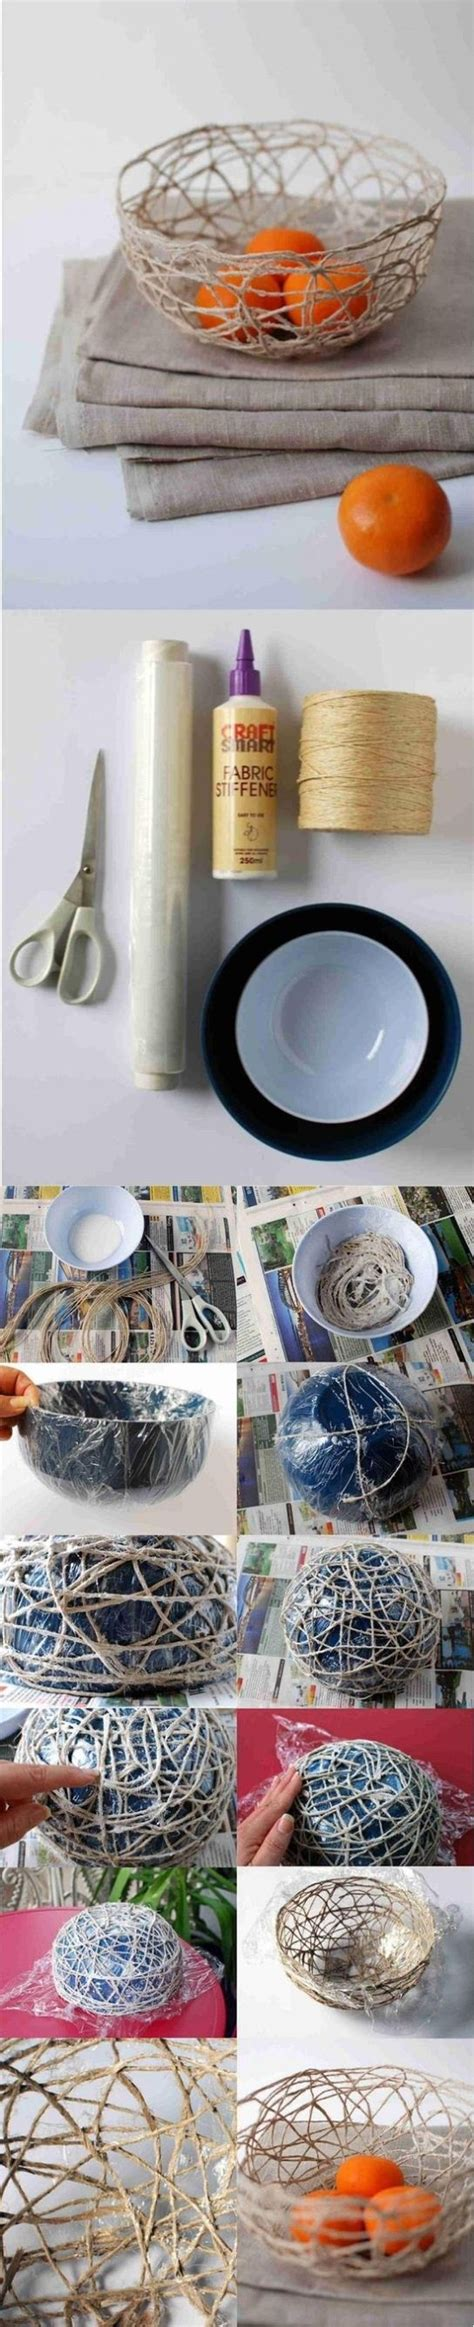 diy home craft projects 9 unique and useful do it yourself projects for home decor